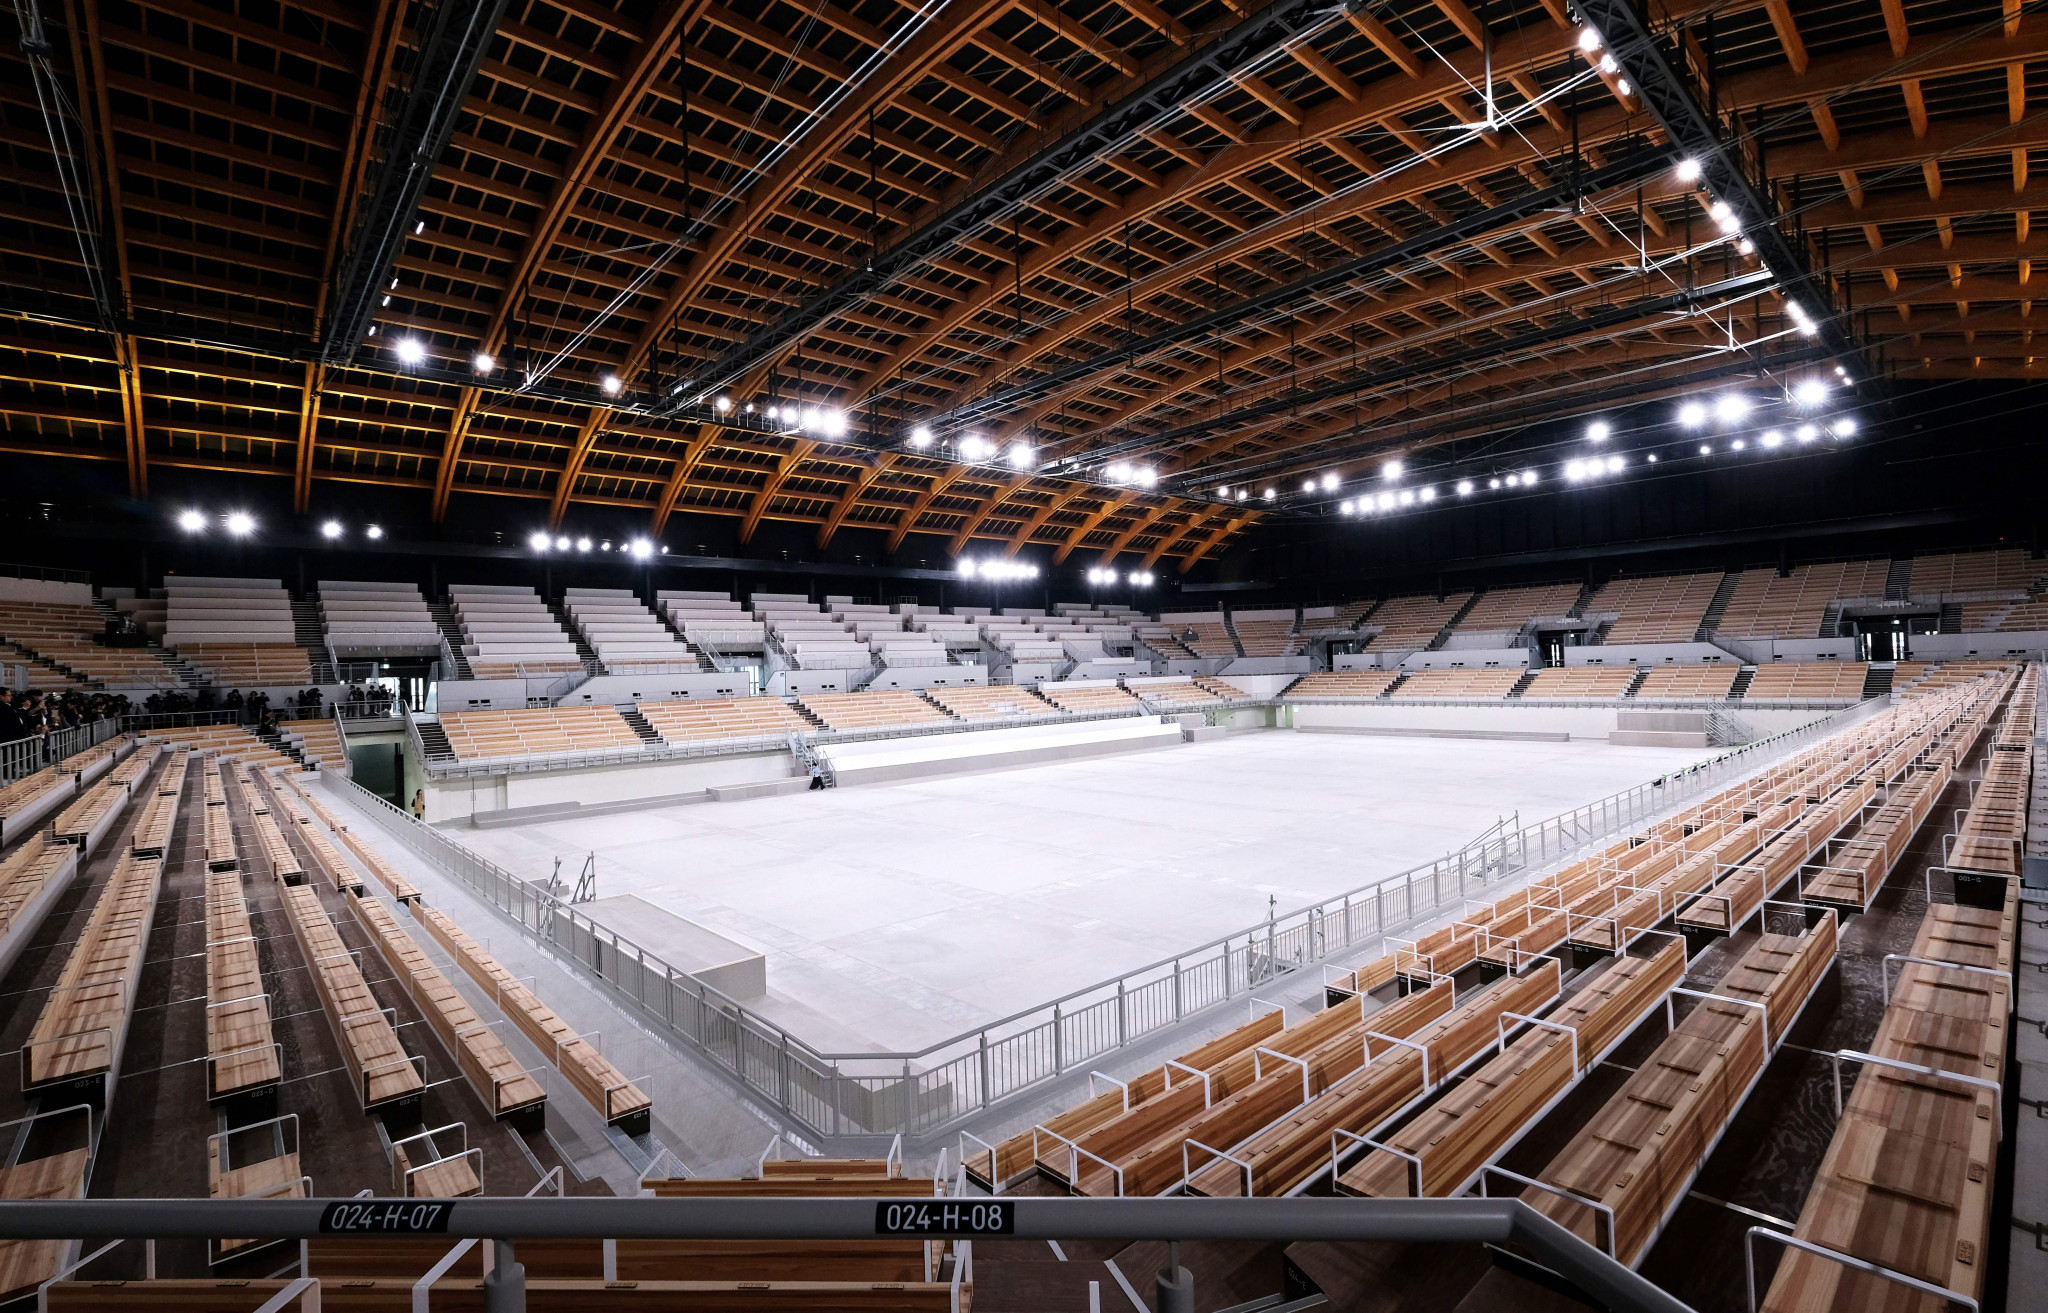 The venue features a 30 metre wide timber roof ©Getty Images